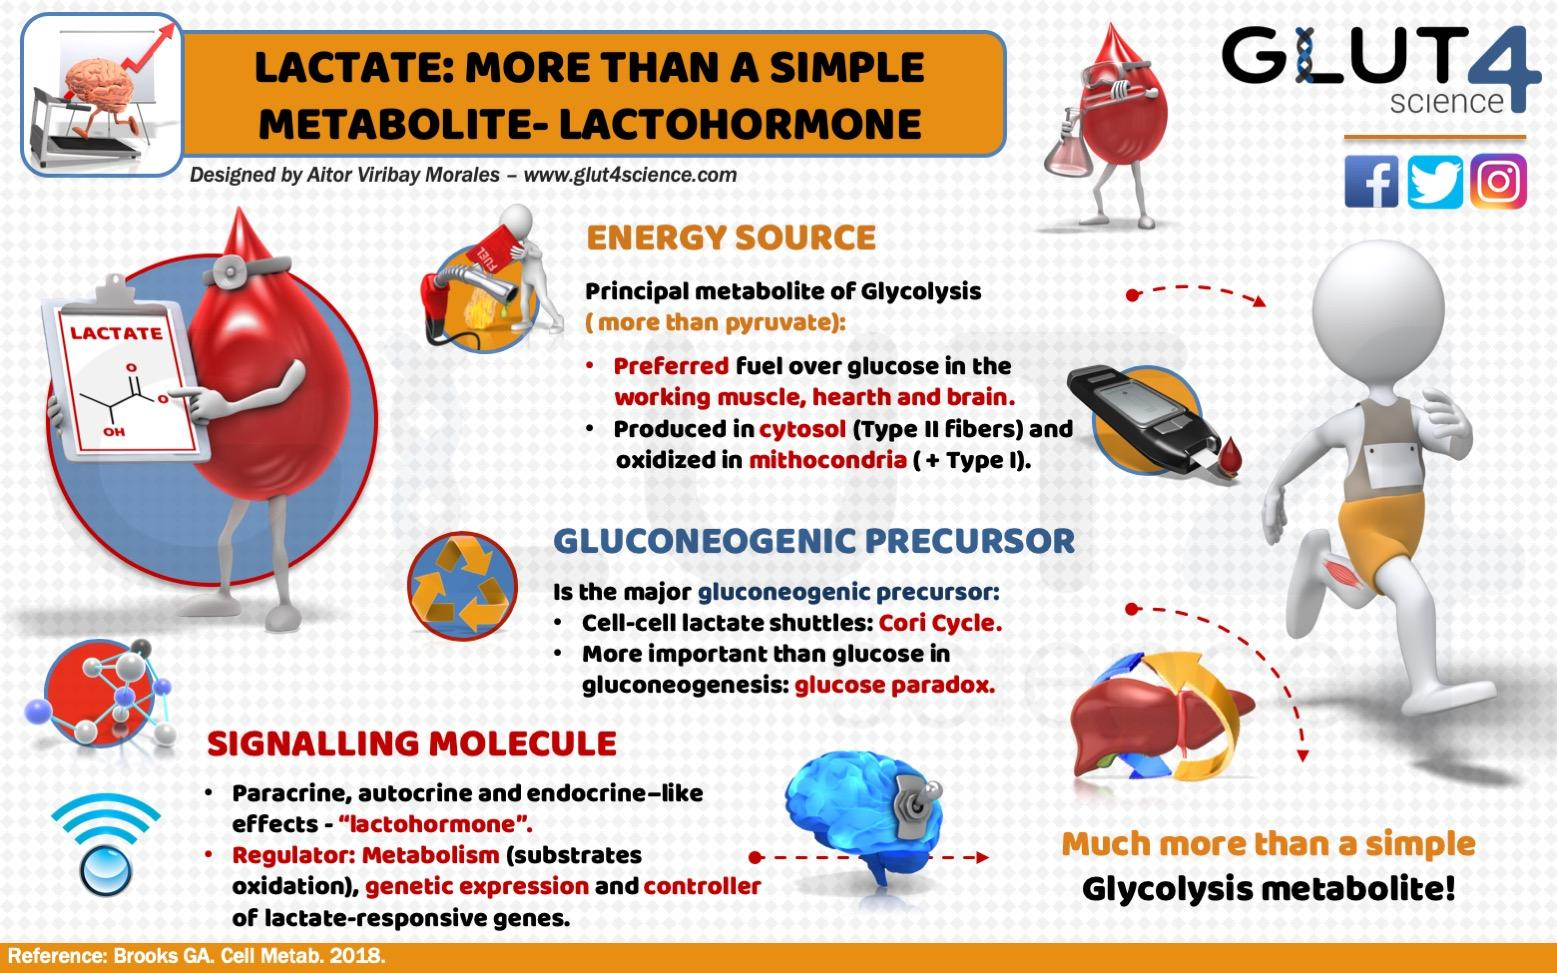 Lactate: More than a simple glycolysis metabolite - lactohormone